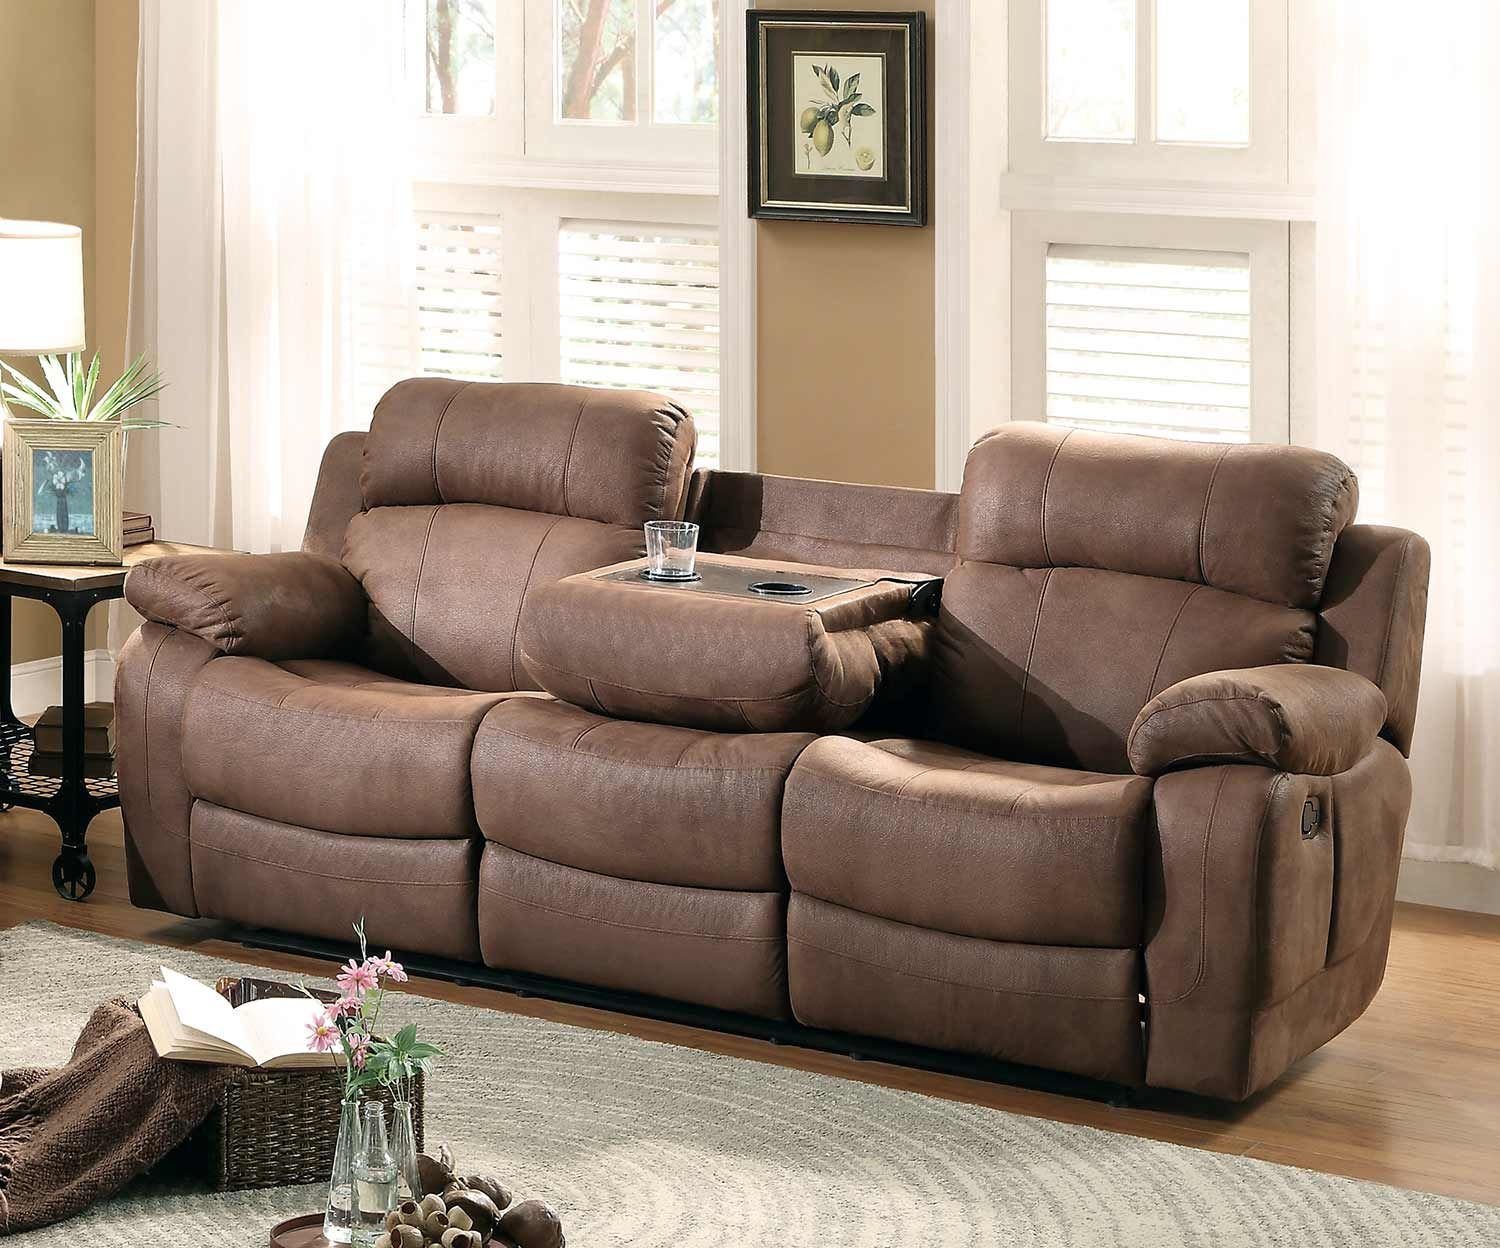 Fine Homelegance Marille Double Reclining Sofa With Center Drop Squirreltailoven Fun Painted Chair Ideas Images Squirreltailovenorg